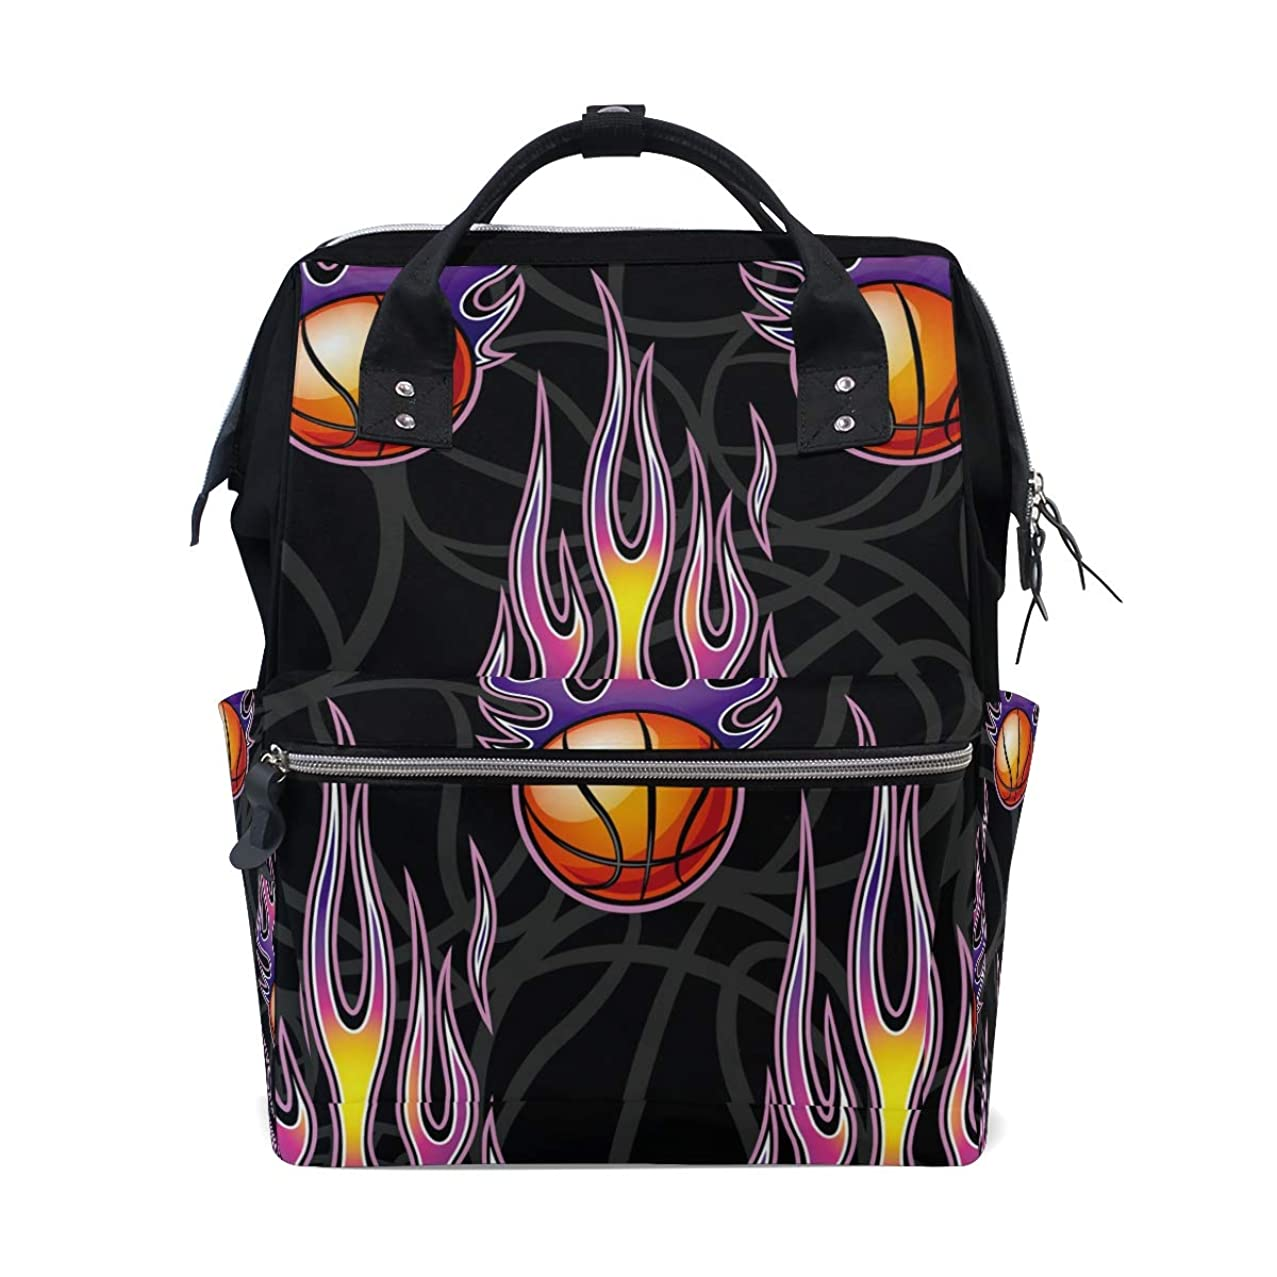 Basketball With Fire Pattern School Backpack Large Capacity Mummy Bags Laptop Handbag Casual Travel Rucksack Satchel For Women Men Adult Teen Children